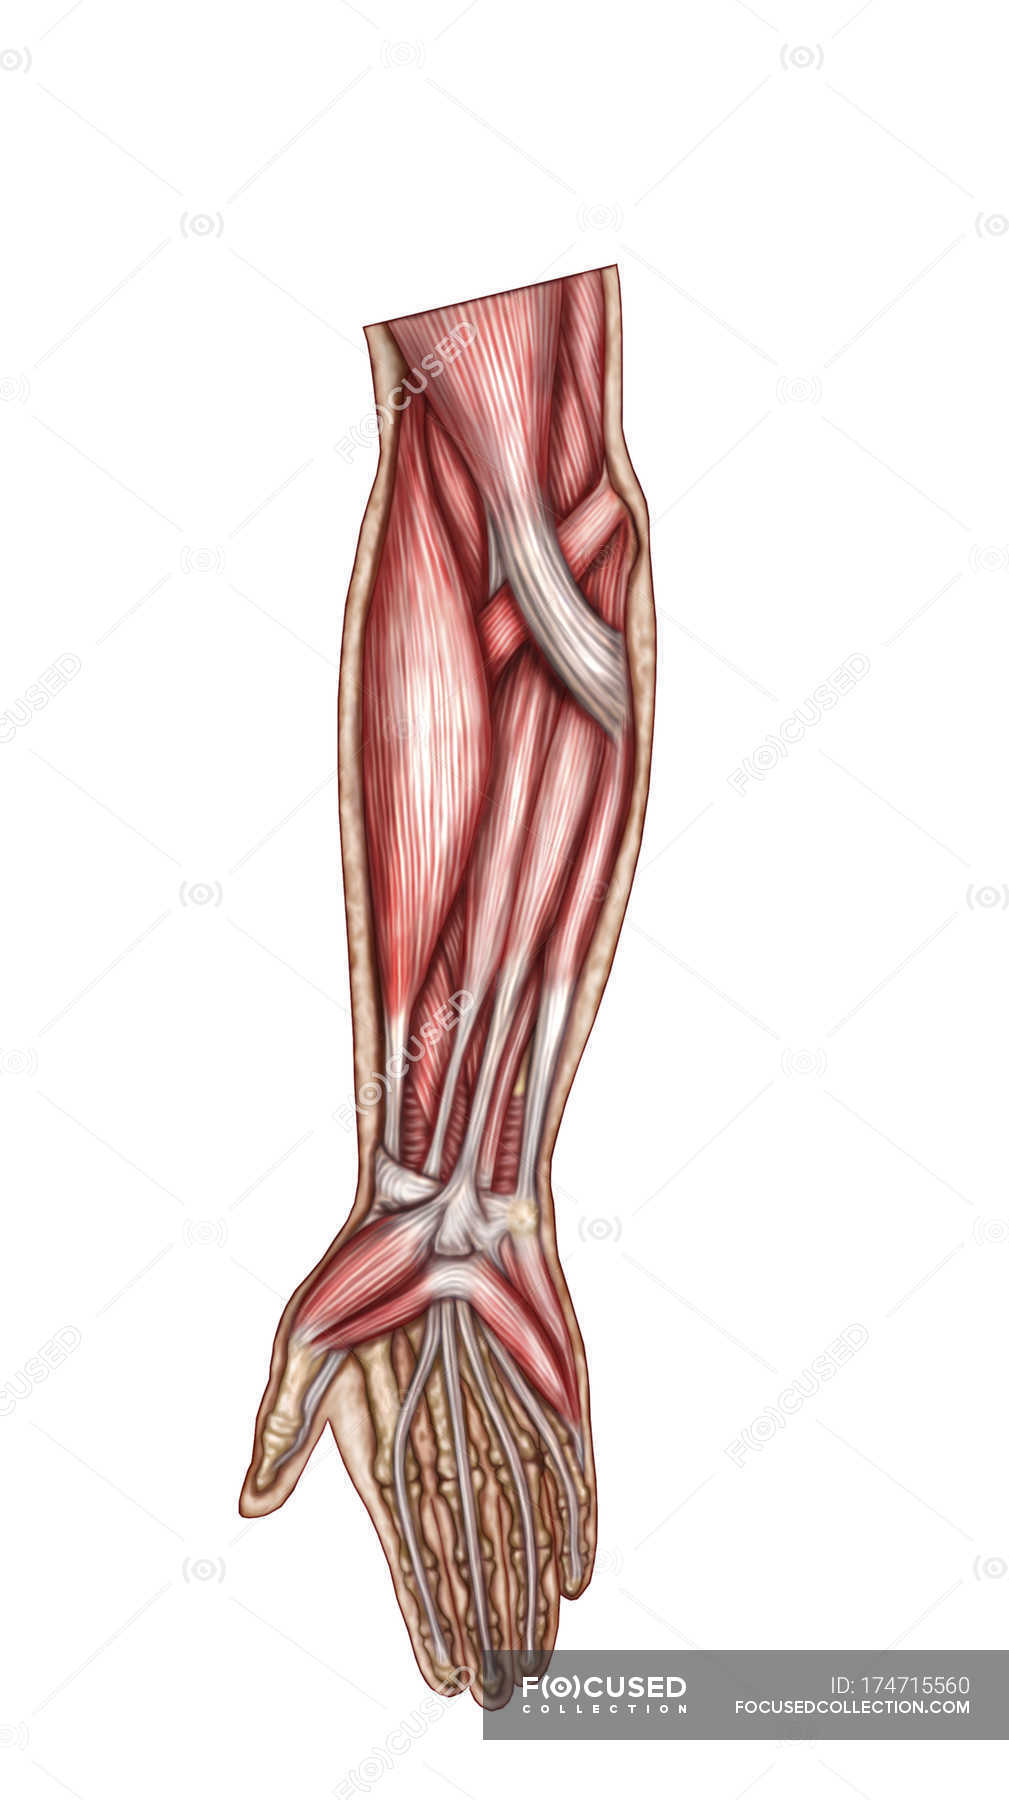 Anatomy of human forearm muscles — Stock Photo | #174715560